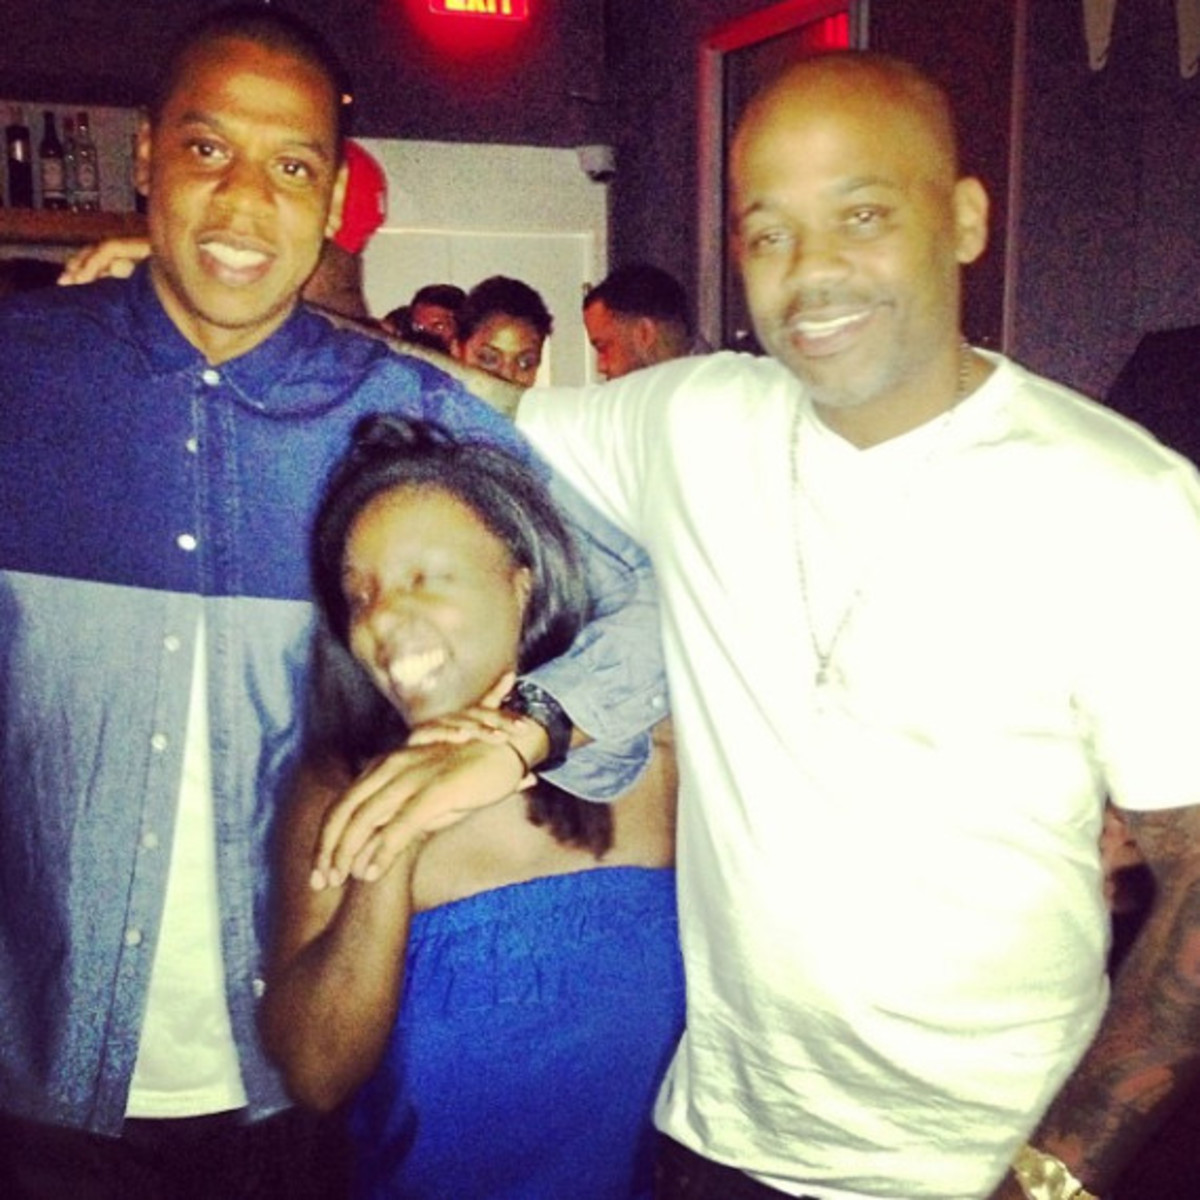 jay-z-and-dame-dash-reunion-in-nyc-02